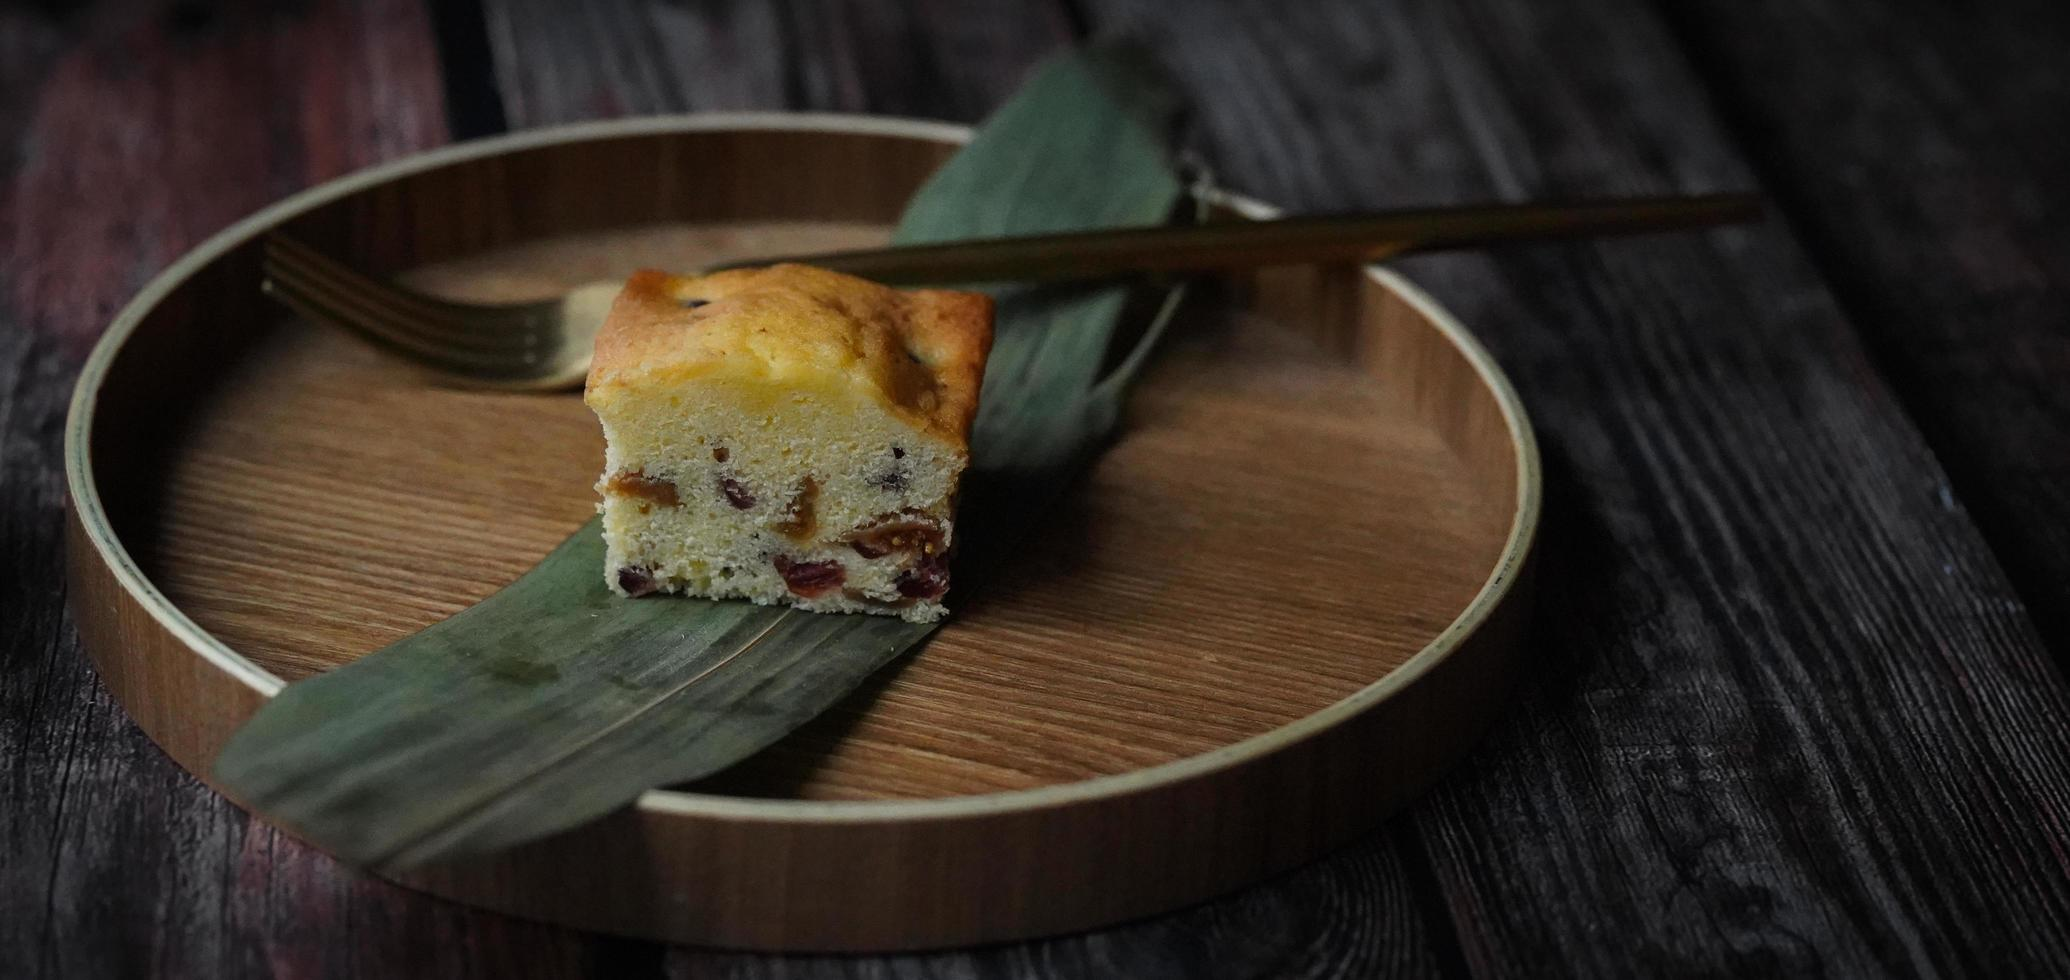 Slice of cake on wooden plate photo